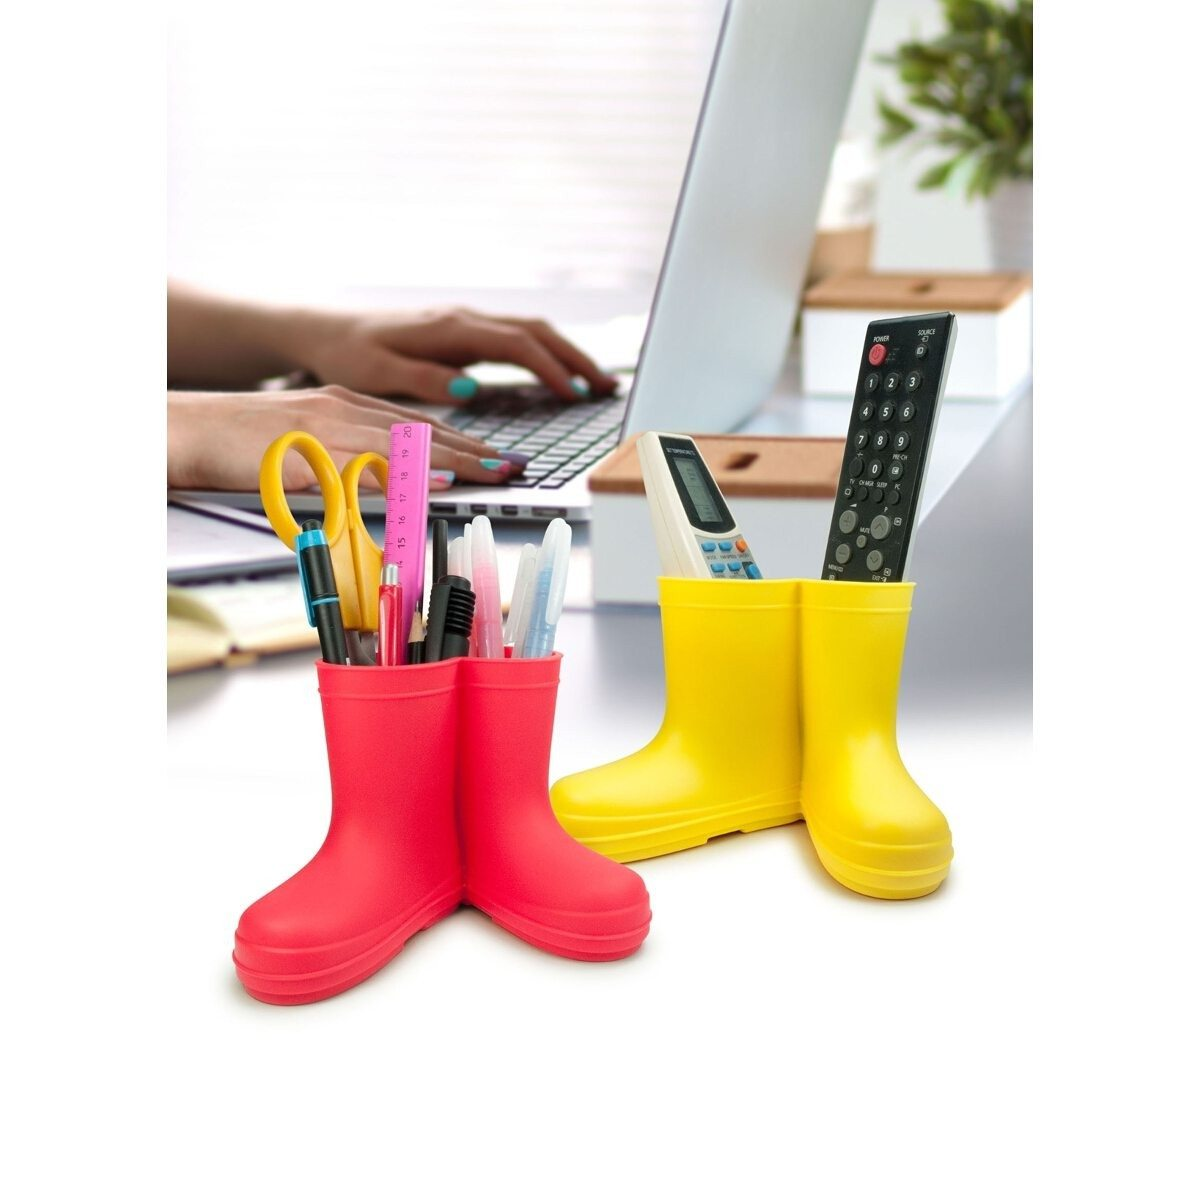 Rubber Boots Pen Holder - red